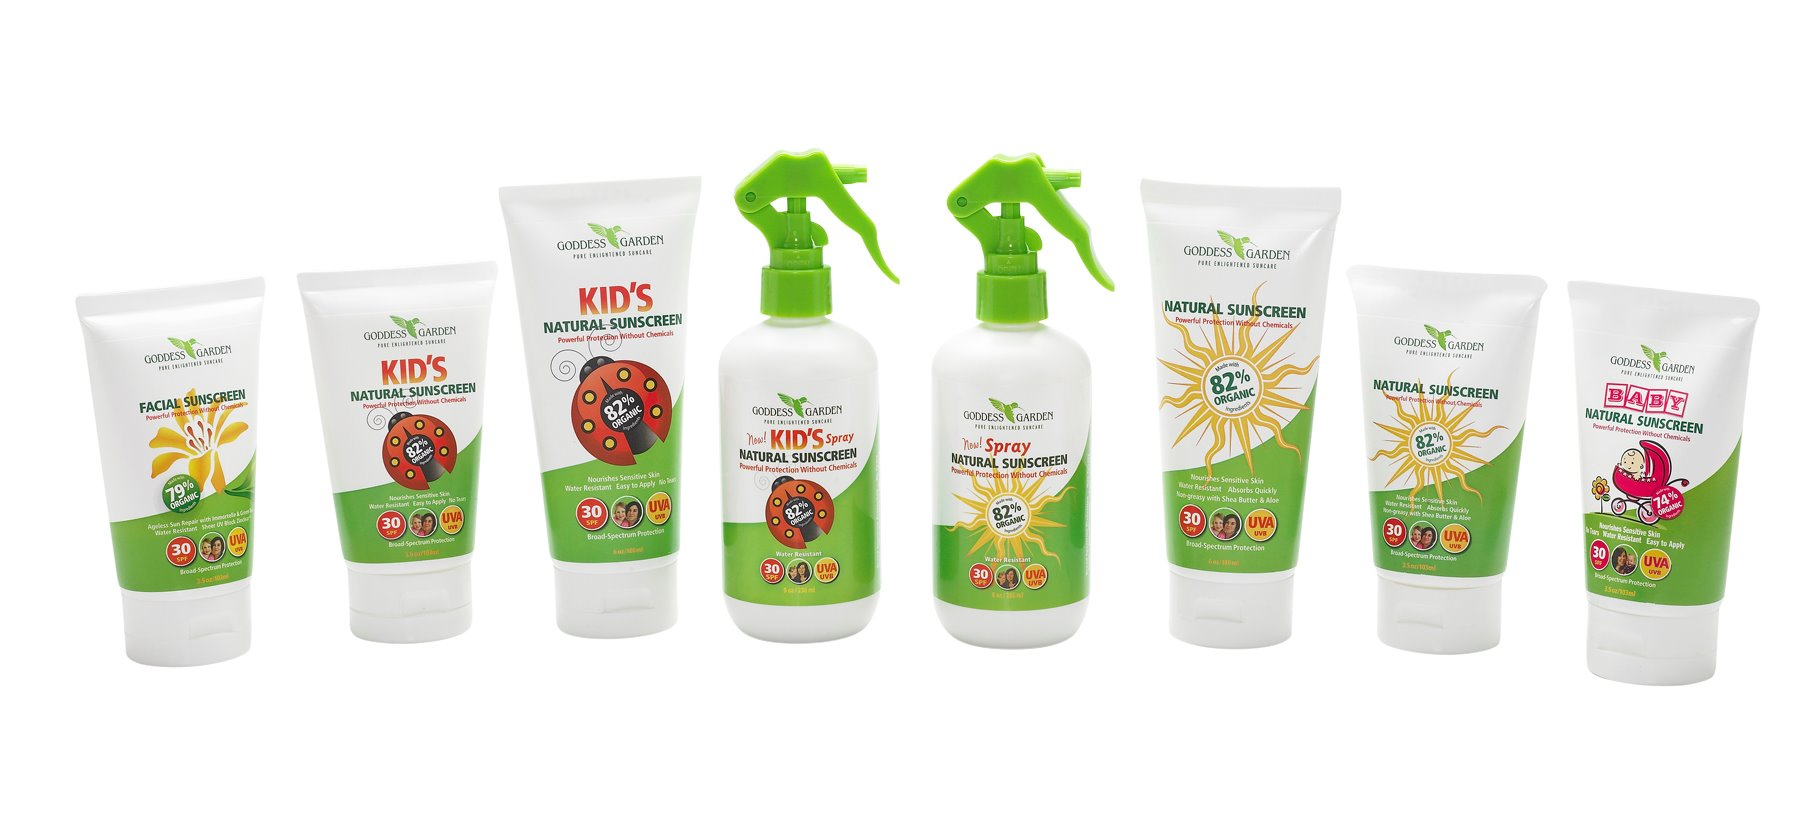 Goddess Garden To Giveaway One Year Of Sunscreen